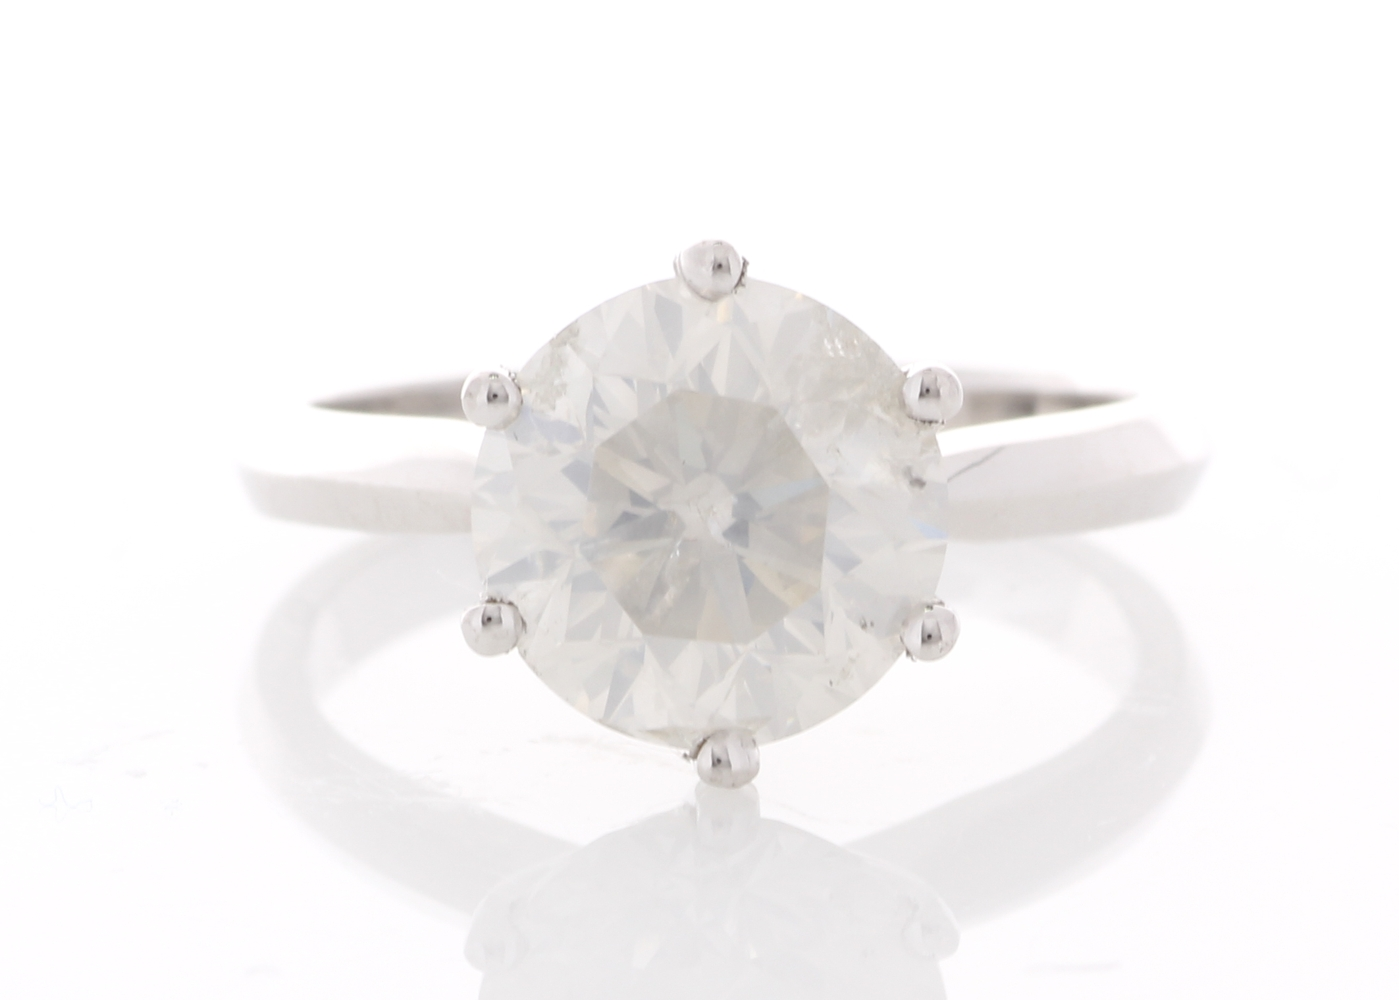 Lot 12 - 18ct White Gold Prong Set Diamond Ring 3.00 Carats